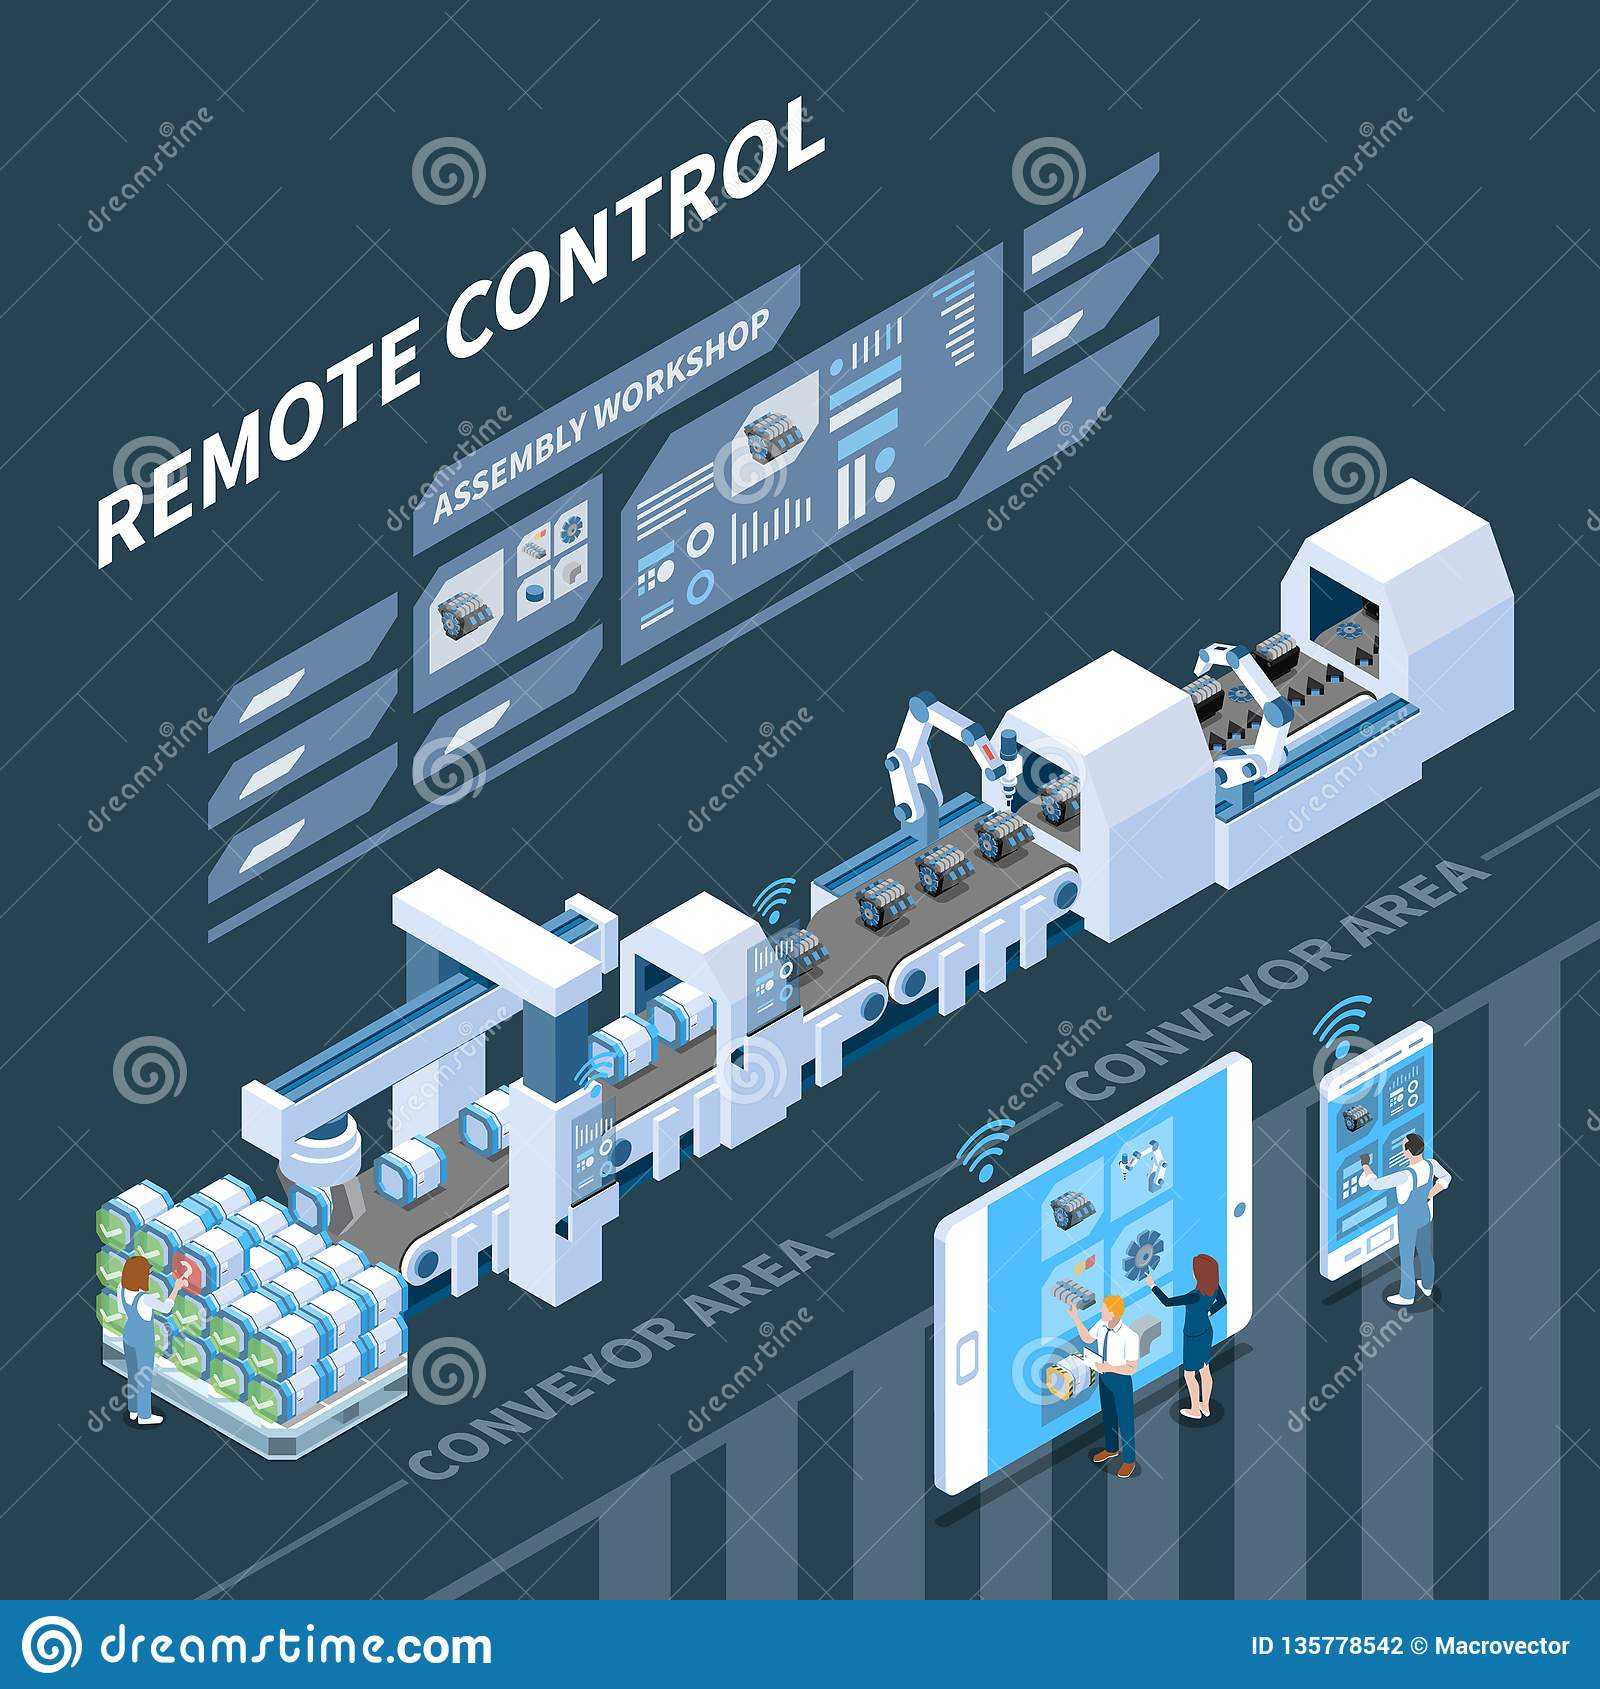 Remote Control Smart Industry Composition